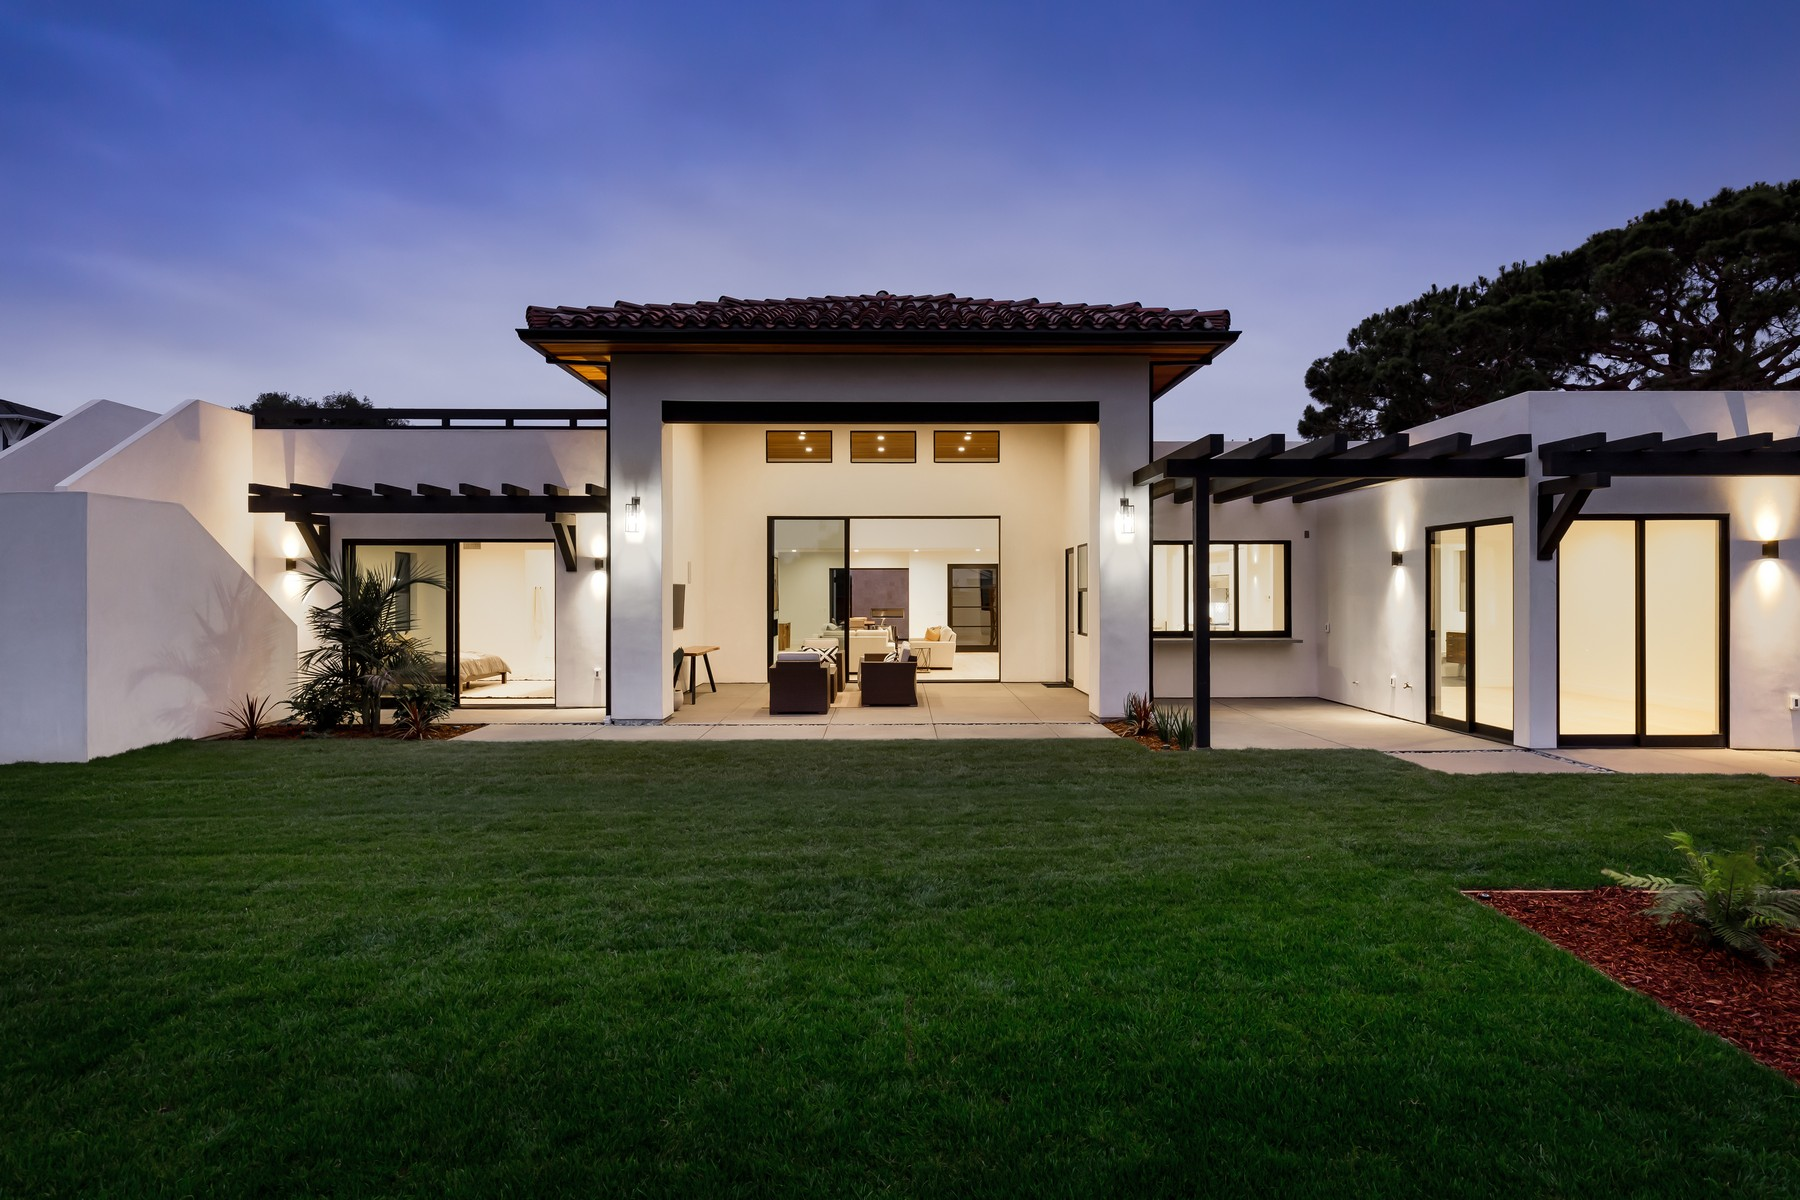 Single Family Home for Active at 1114 Crest Drive 1114 Crest Drive Encinitas, California 92024 United States